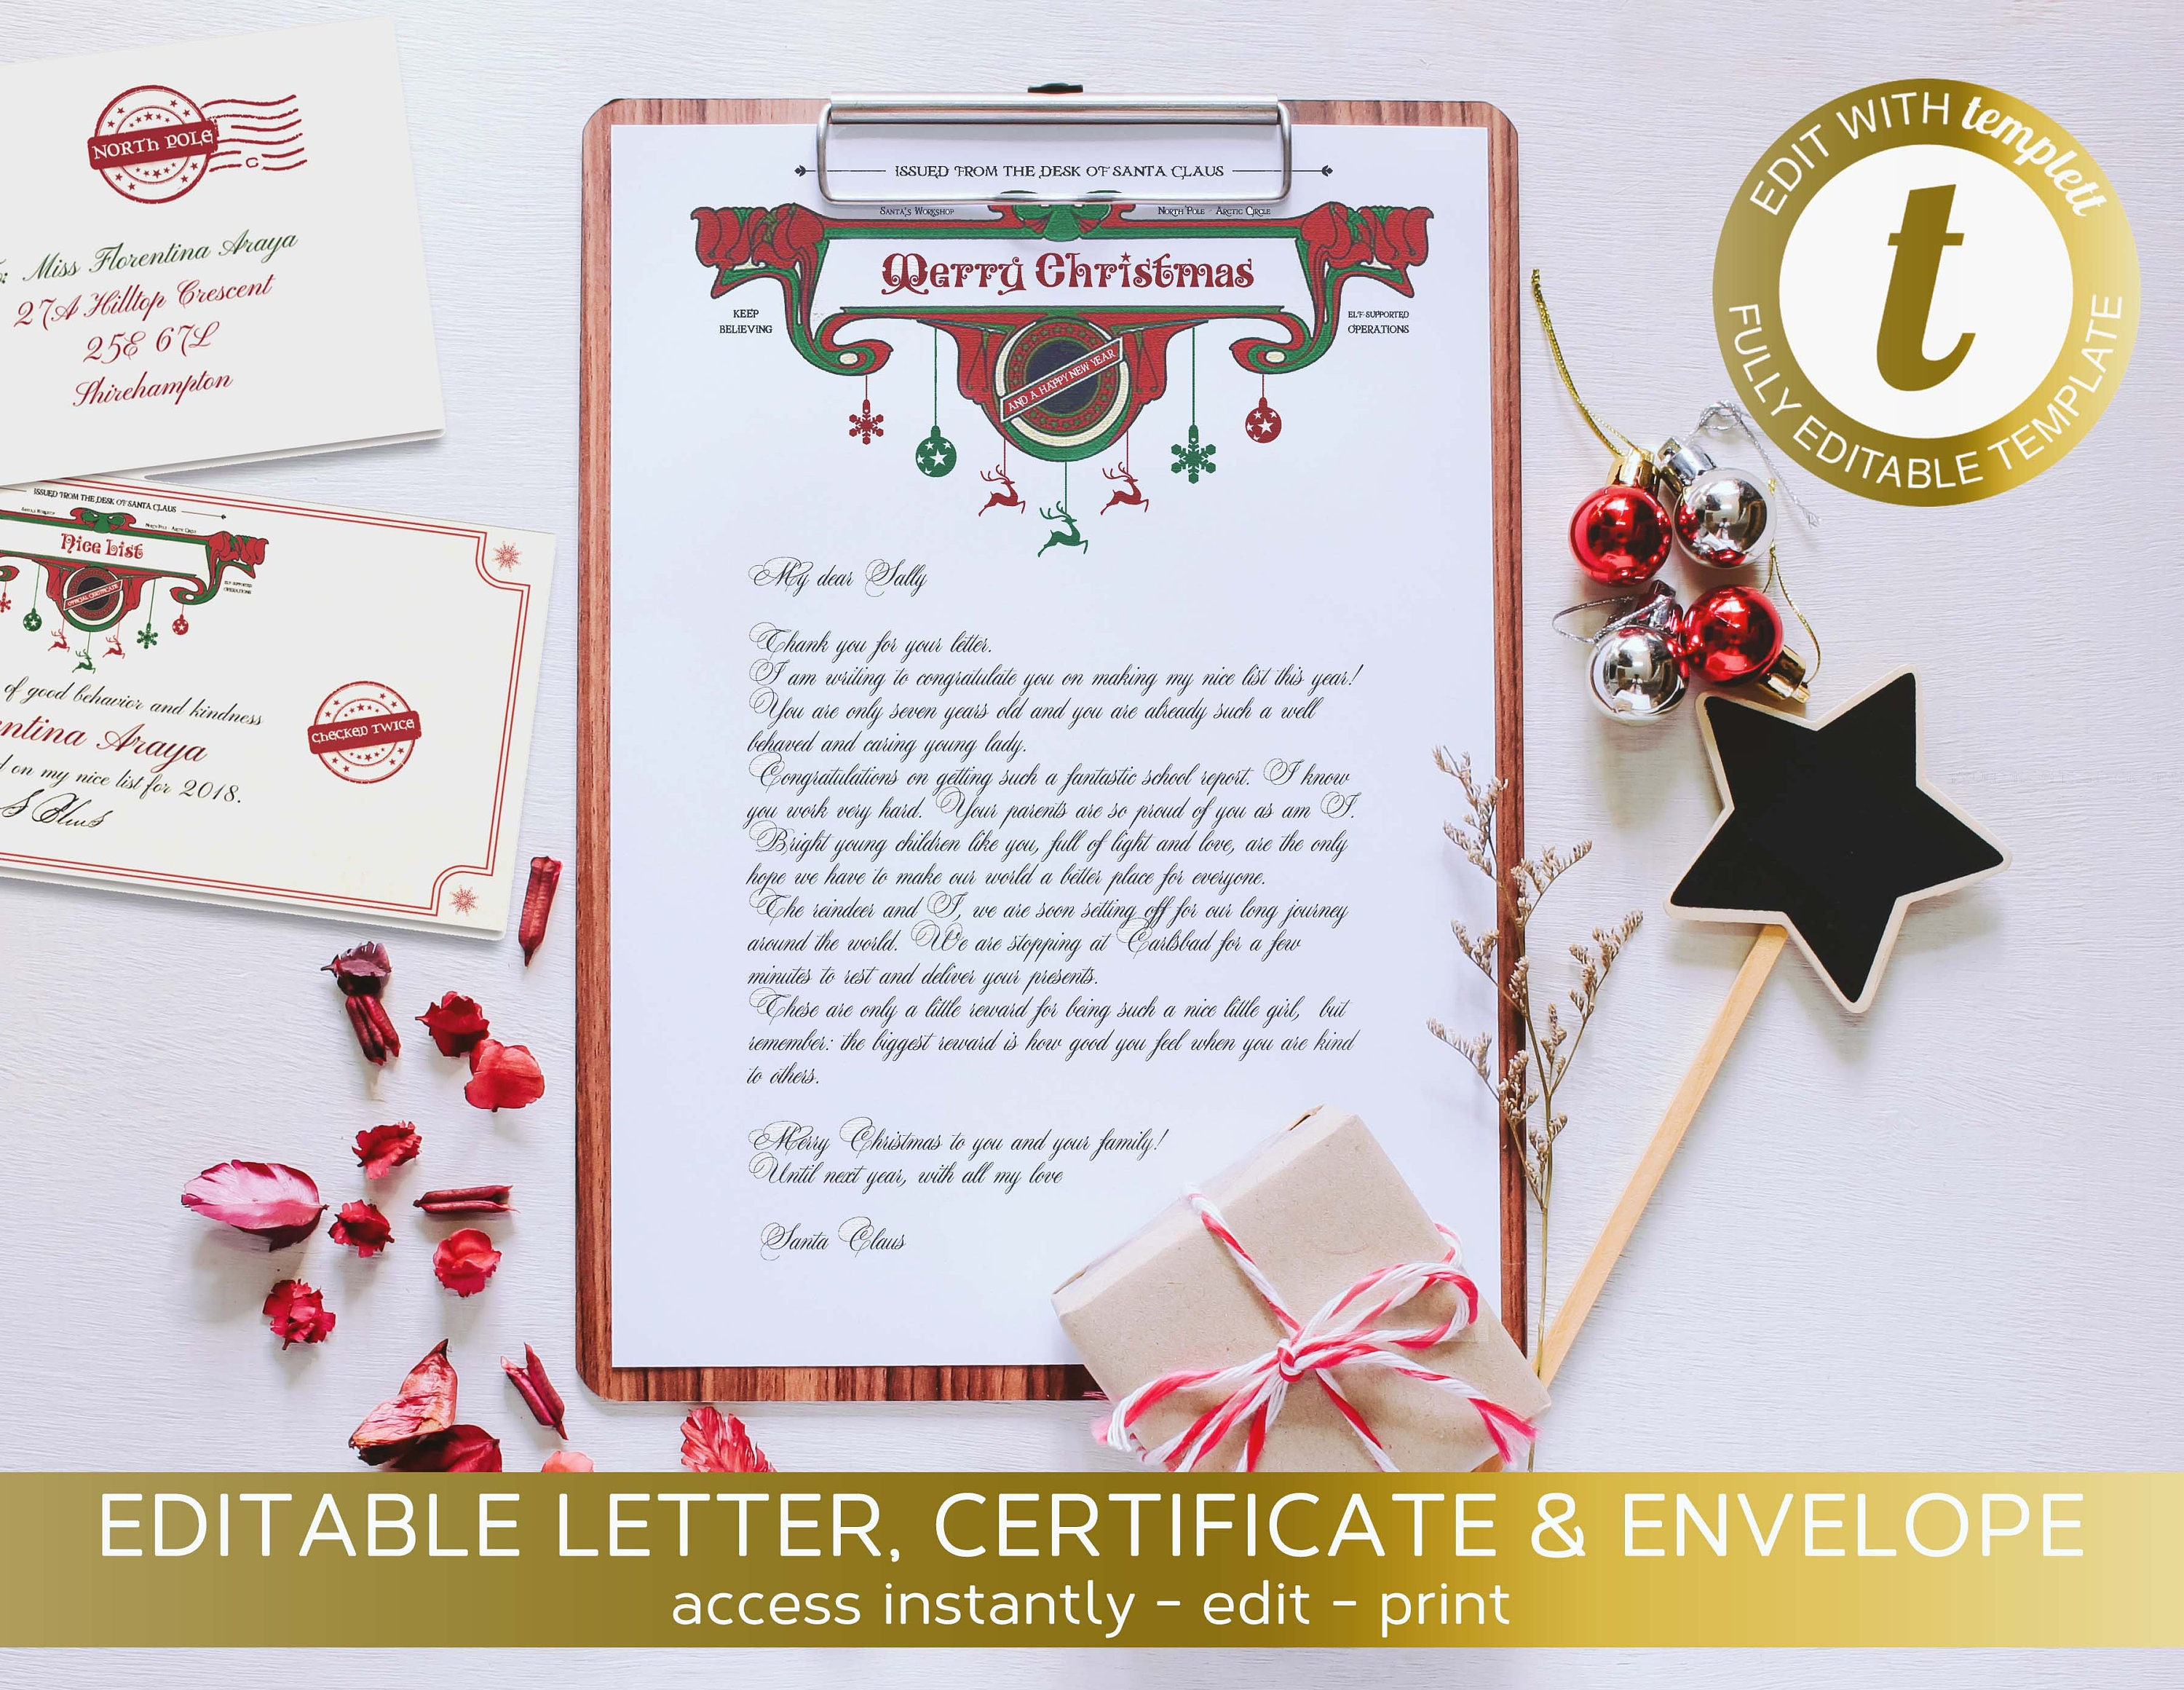 Christmas Letter from Santa Claus ficial Editable North Pole